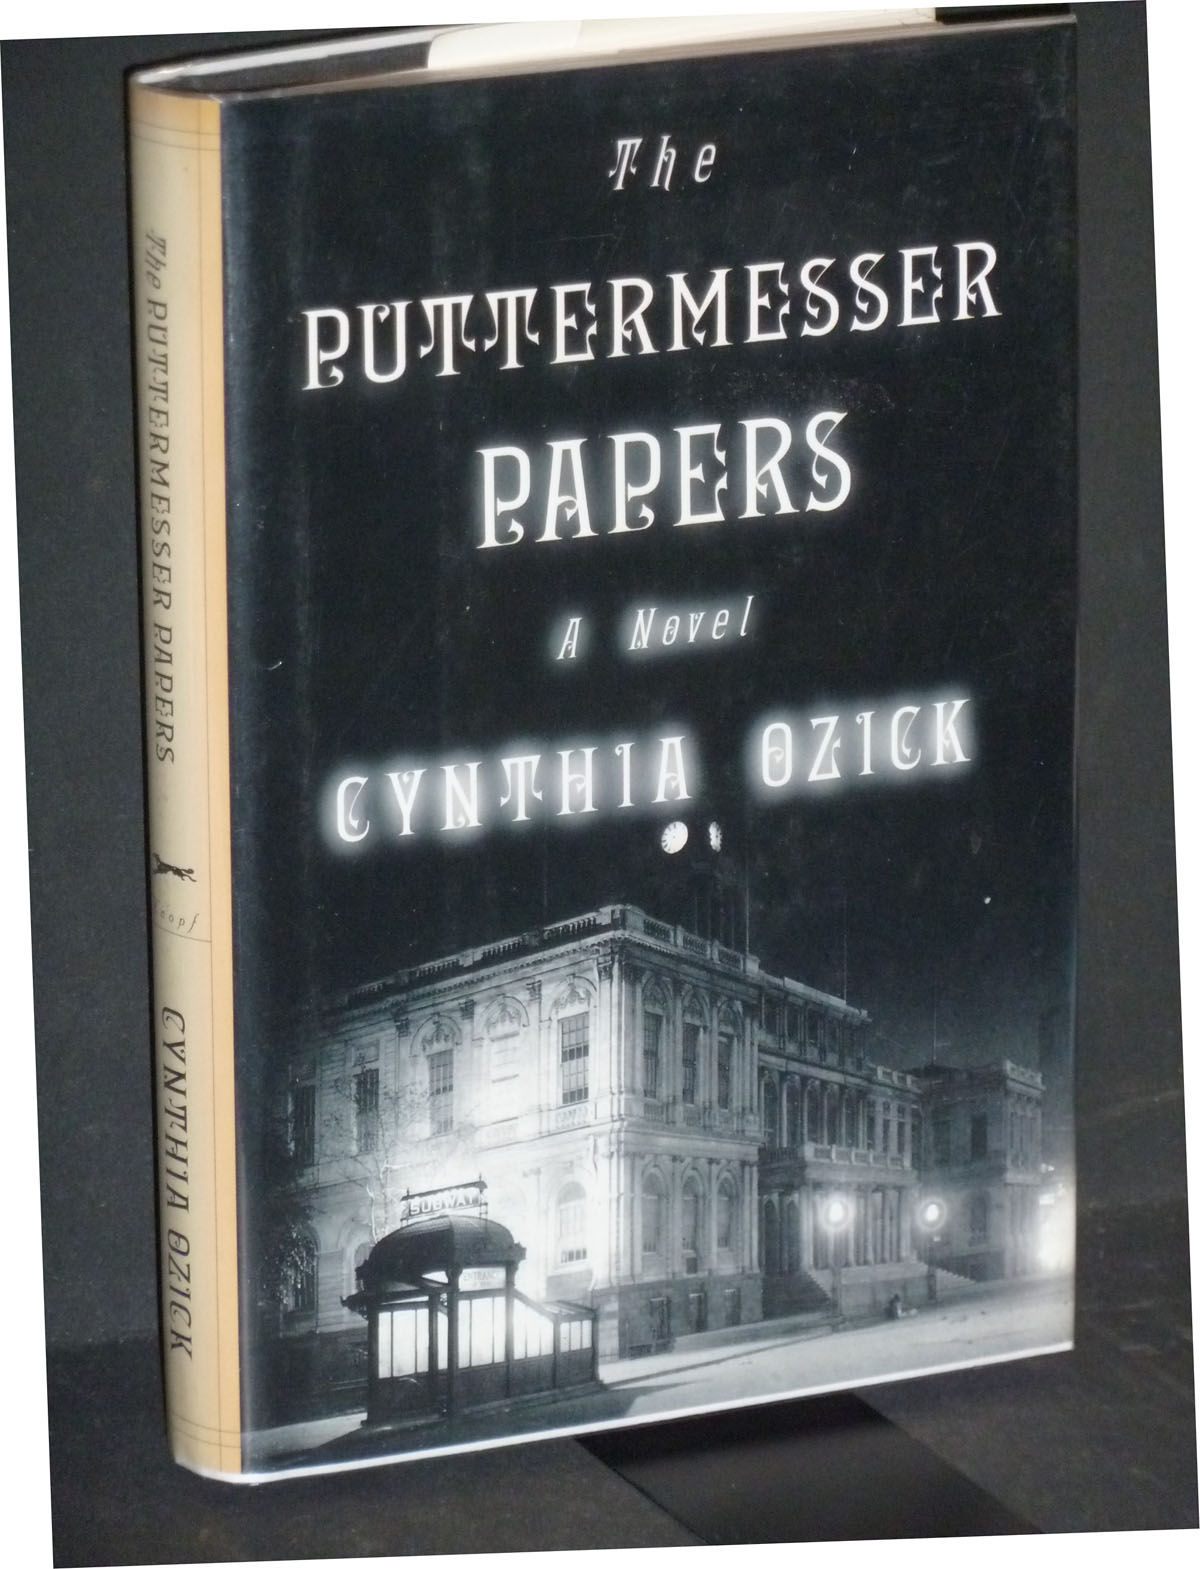 puttermesser papers The puttermesser papers has 1,005 ratings and 152 reviews william1 said: as you read this review, please bear in mind that the puttermesser papers reall.